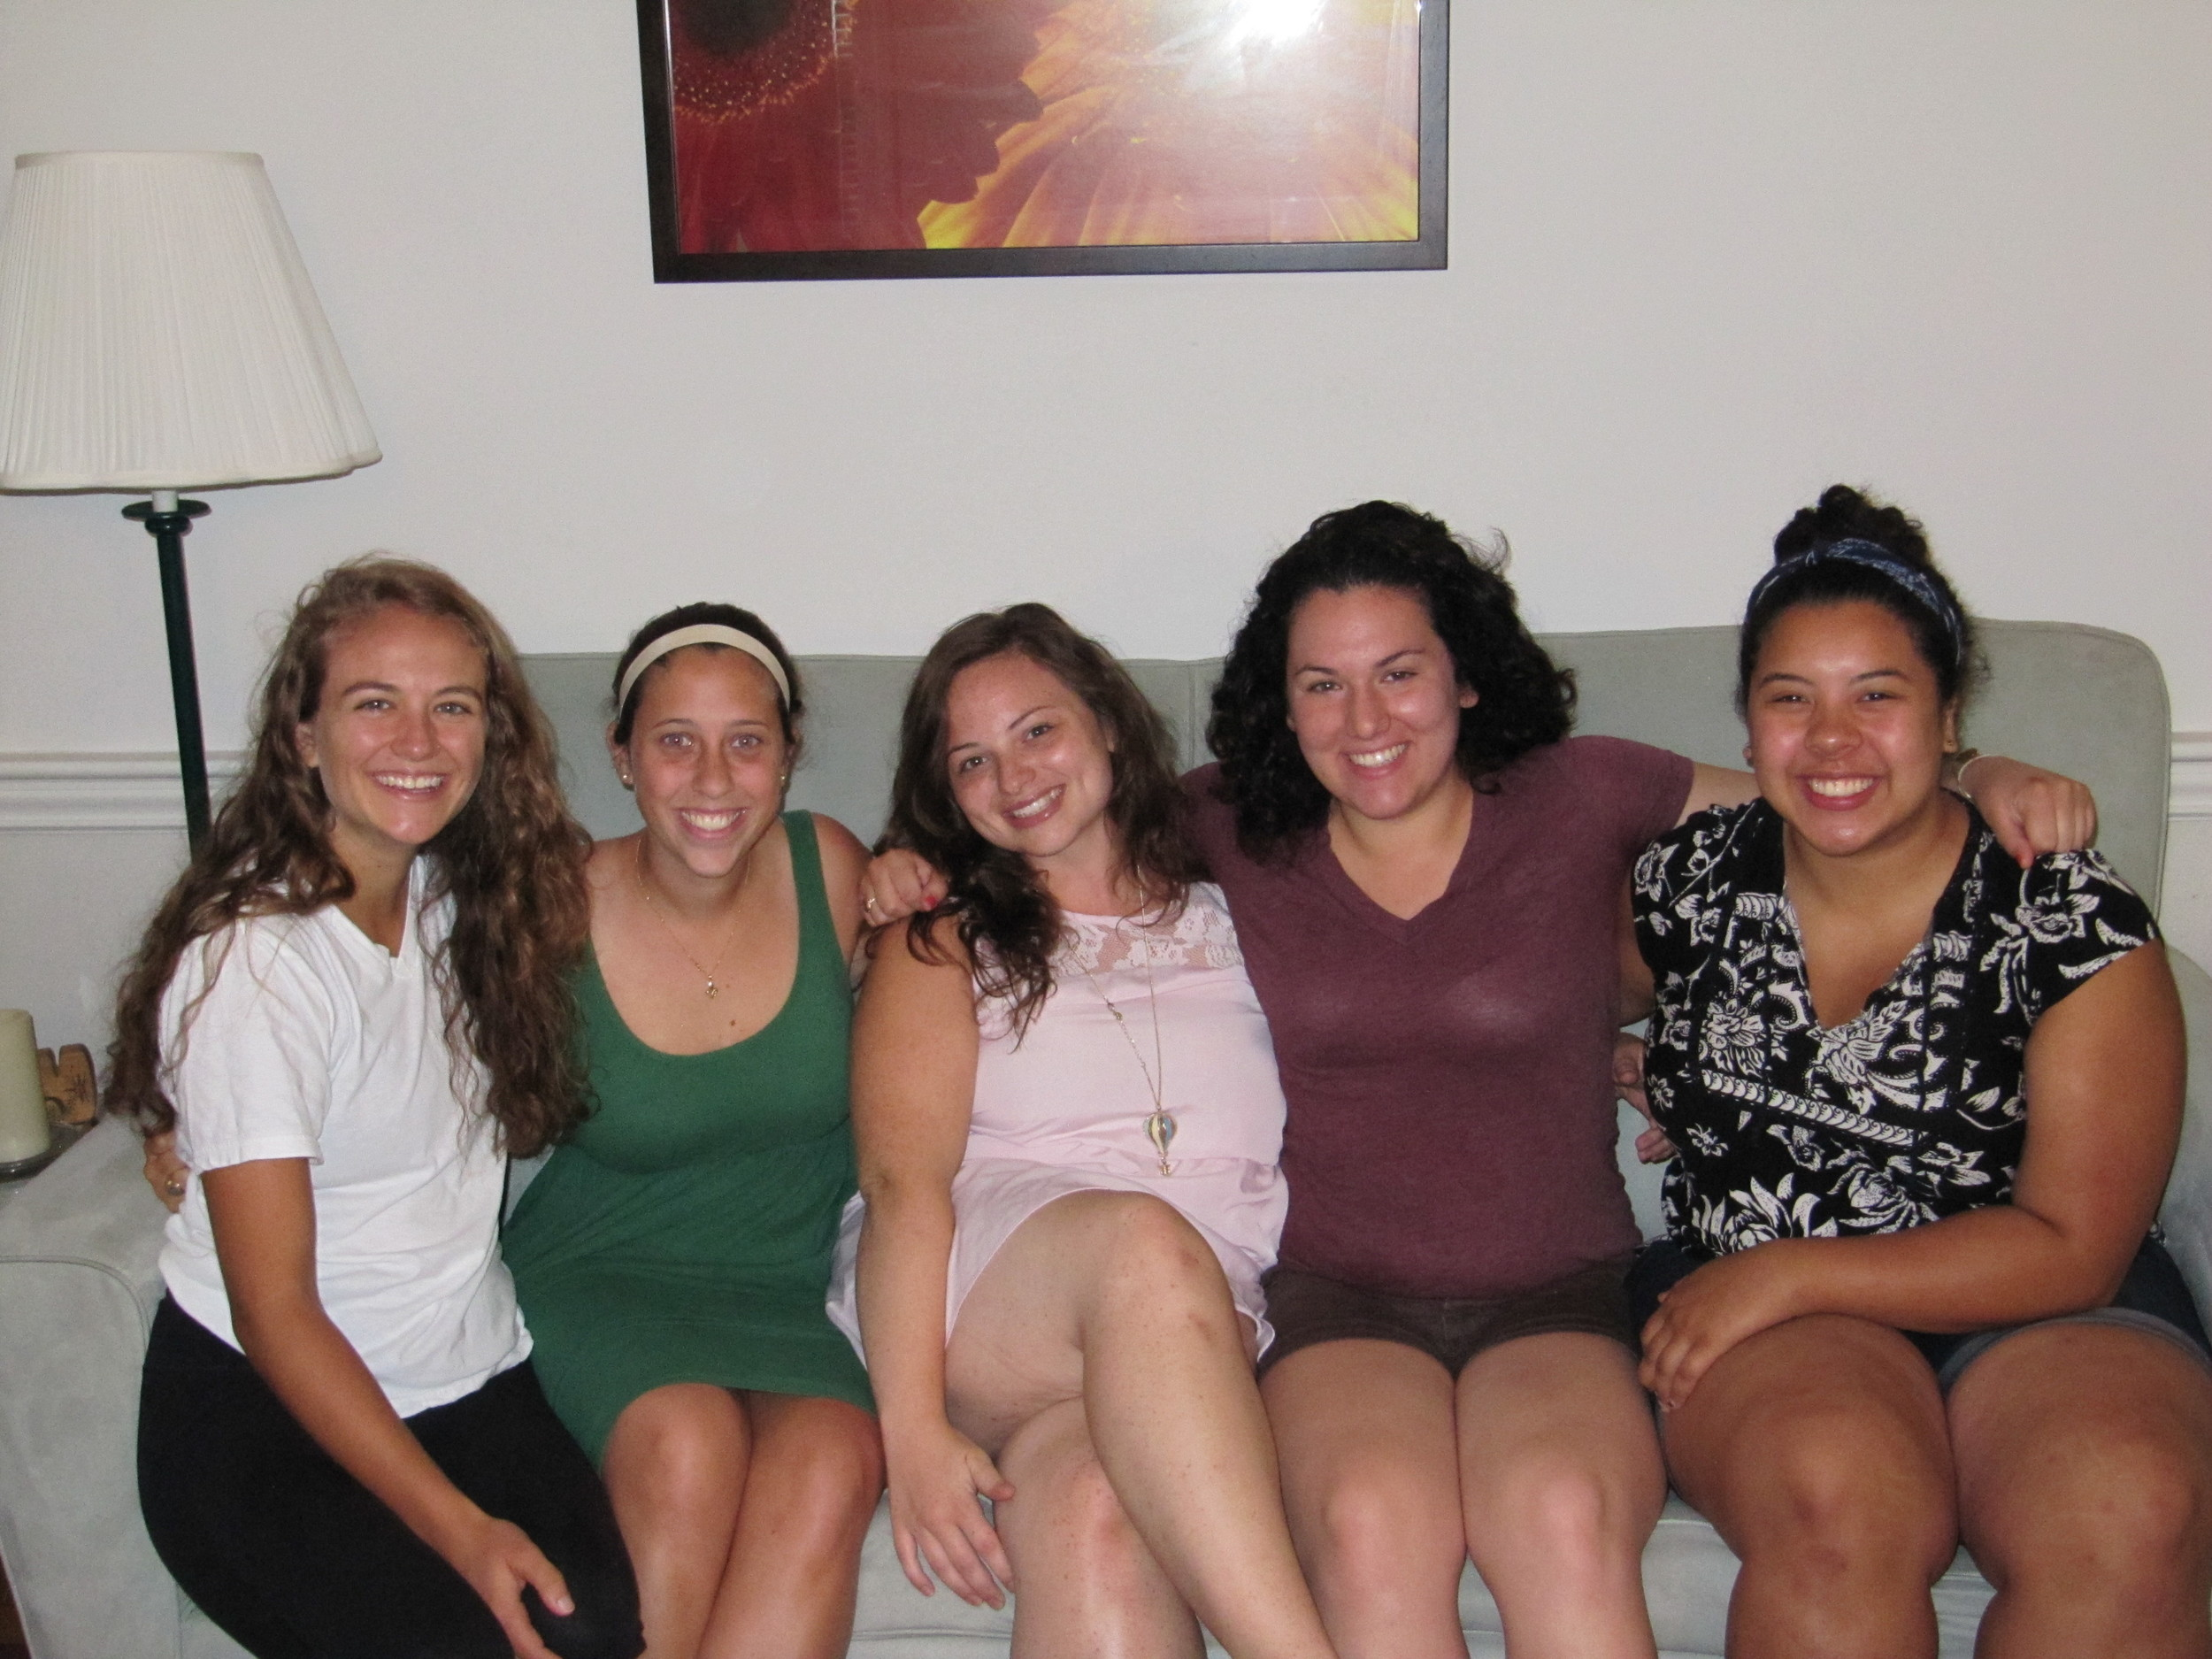 2013-2014 Volunteers: Left to right: Audrey Purdue, Mackenzie Cooke, Gabrielle Gill, Rachel Sluder, and Celestina Lee